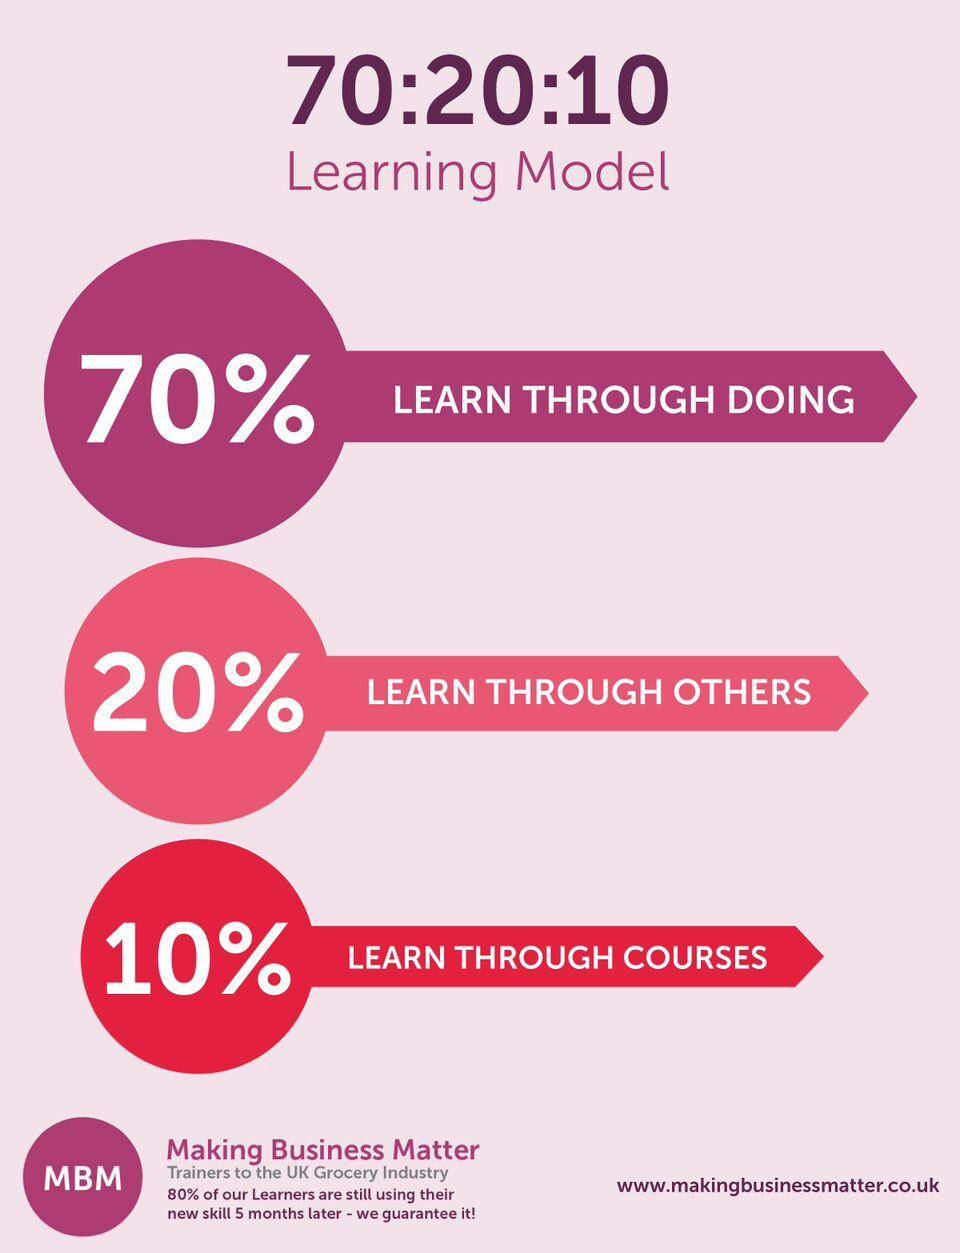 This model is designed to help ones learning.